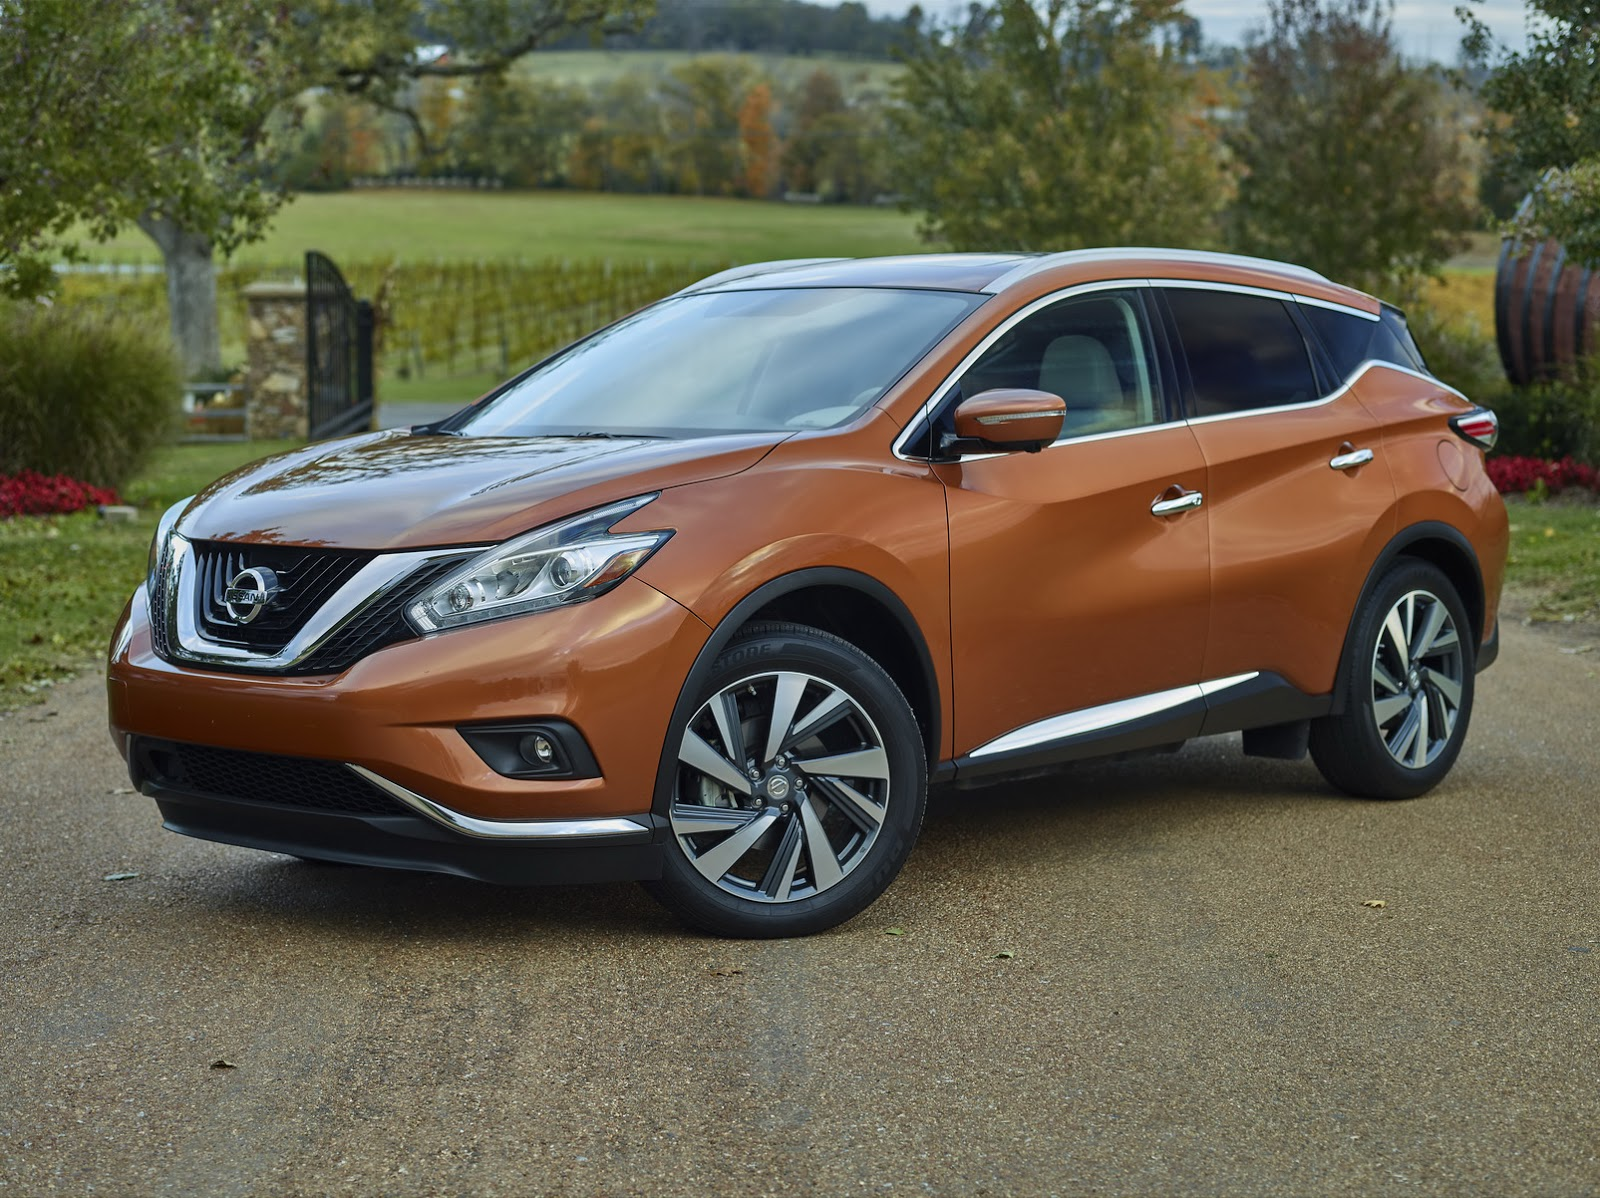 new 2015 nissan murano on sale dec 5 from 29 560. Black Bedroom Furniture Sets. Home Design Ideas